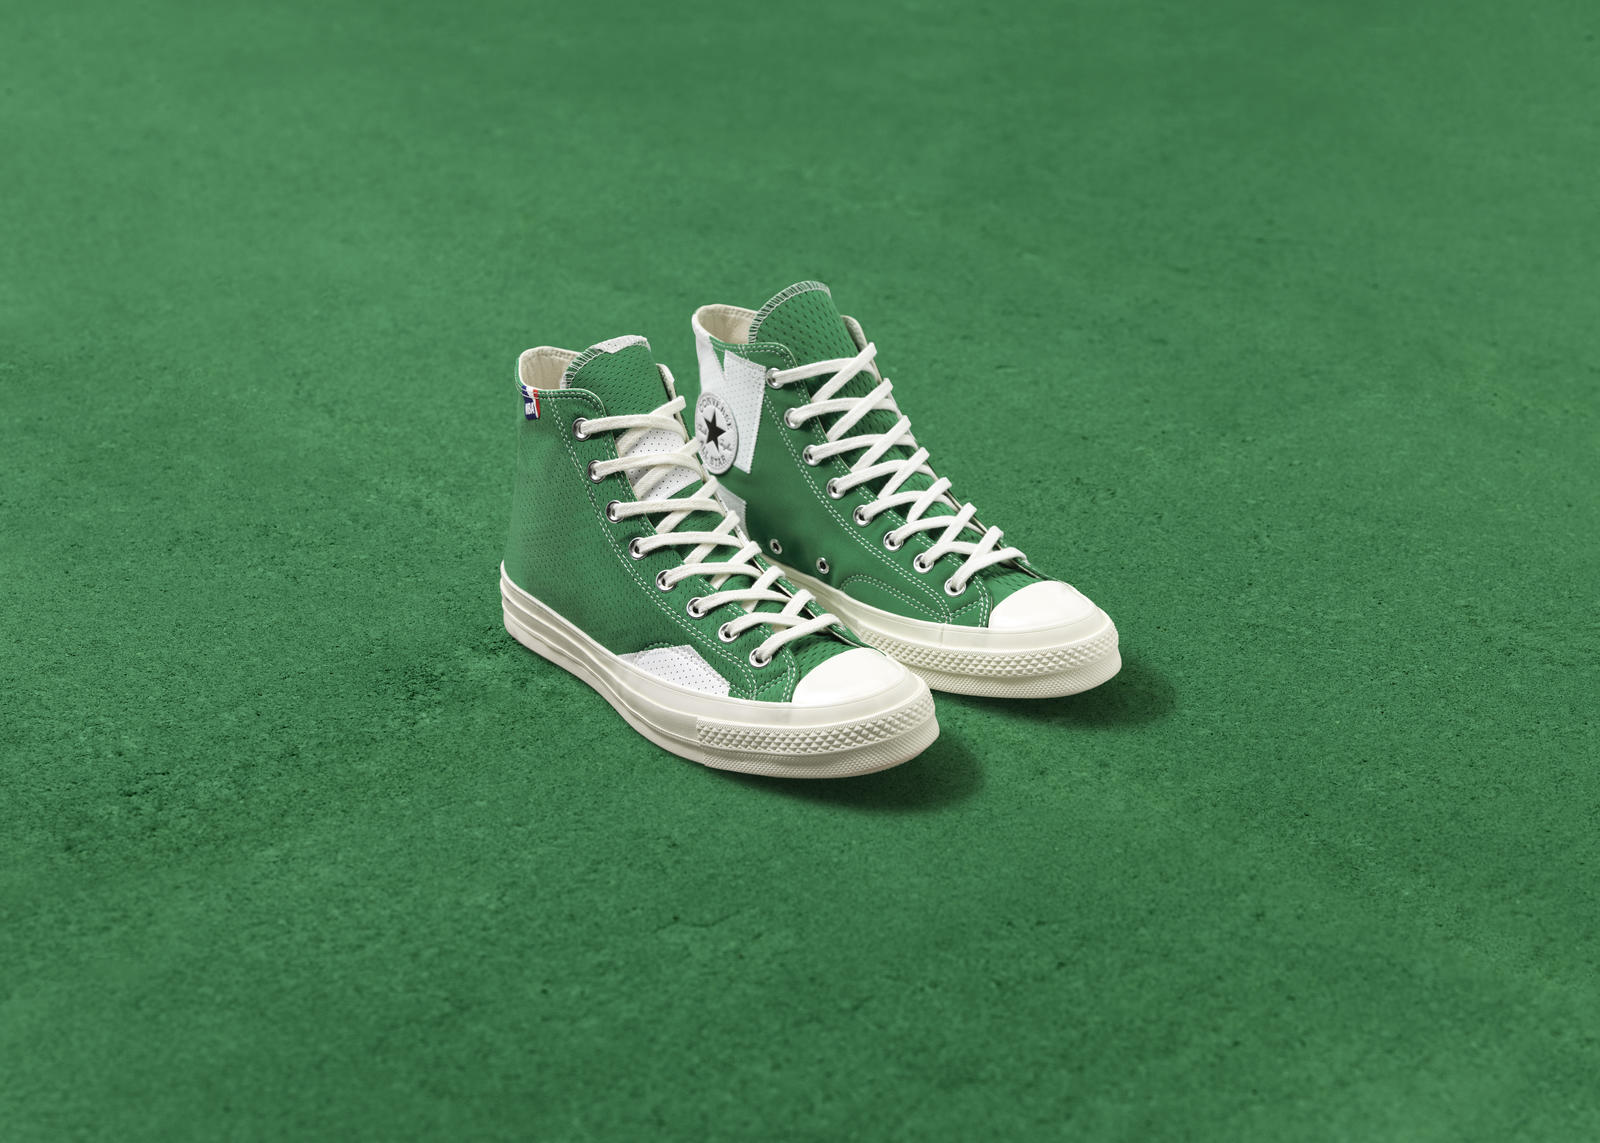 Converse Chuck Taylor All Star High Legend Boston Celtics